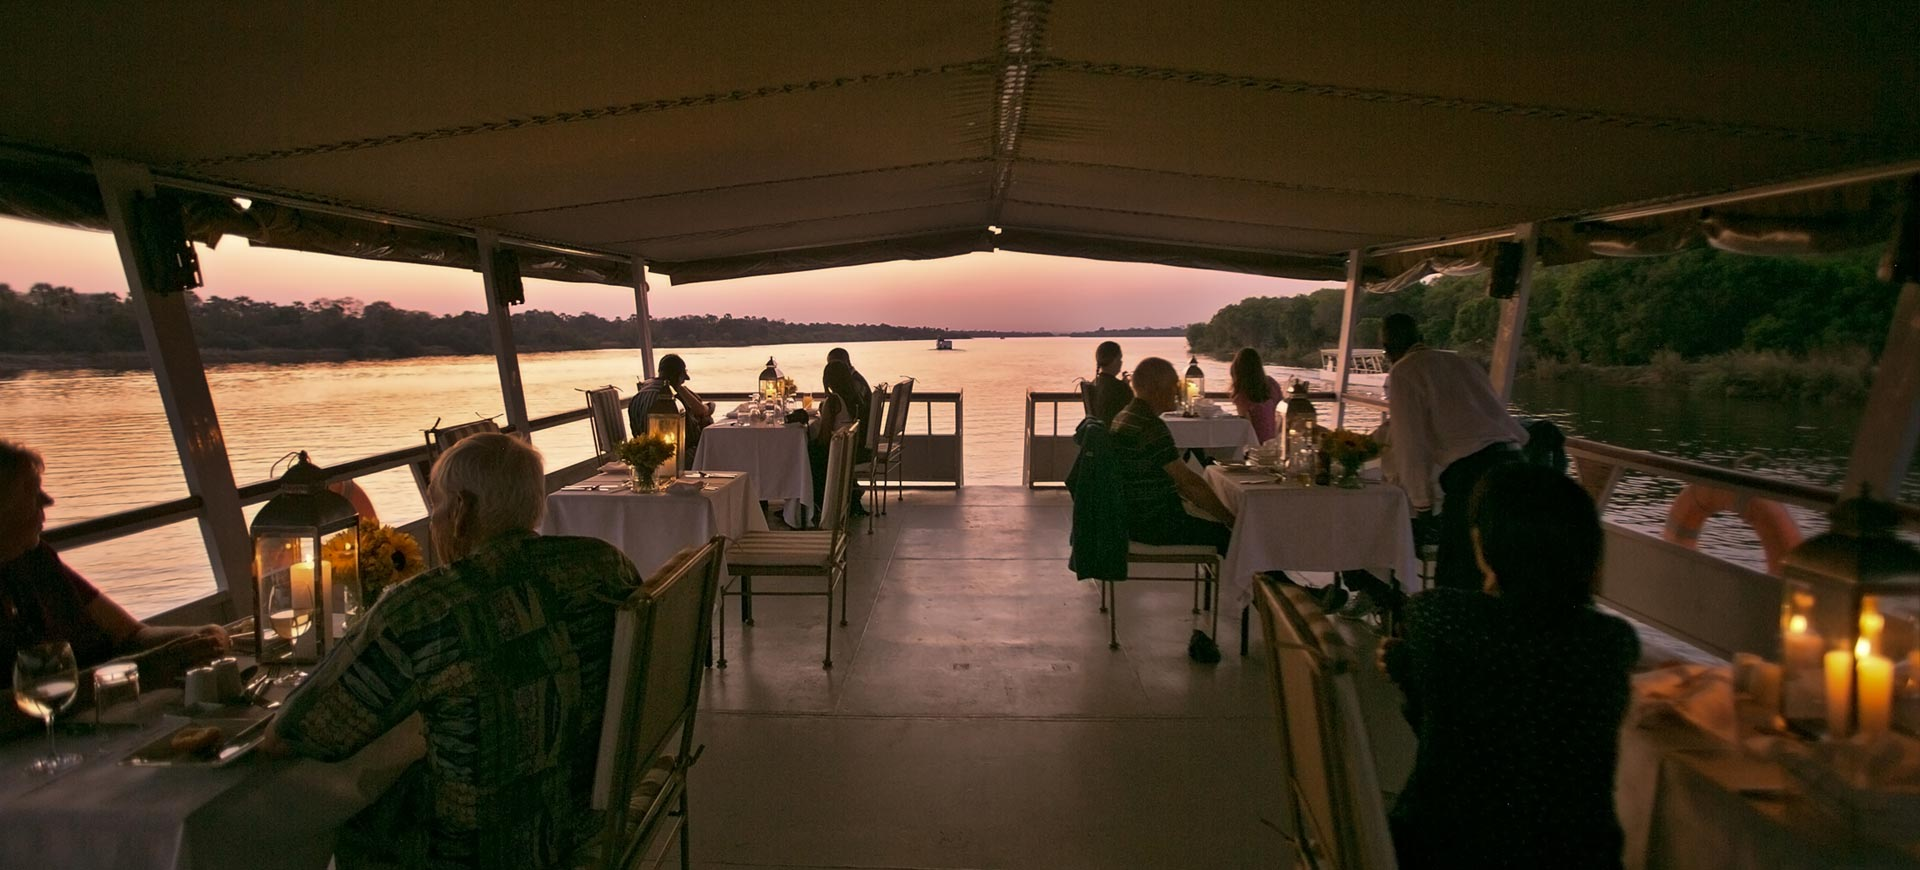 Dinner Cruises Conference Victoria Falls